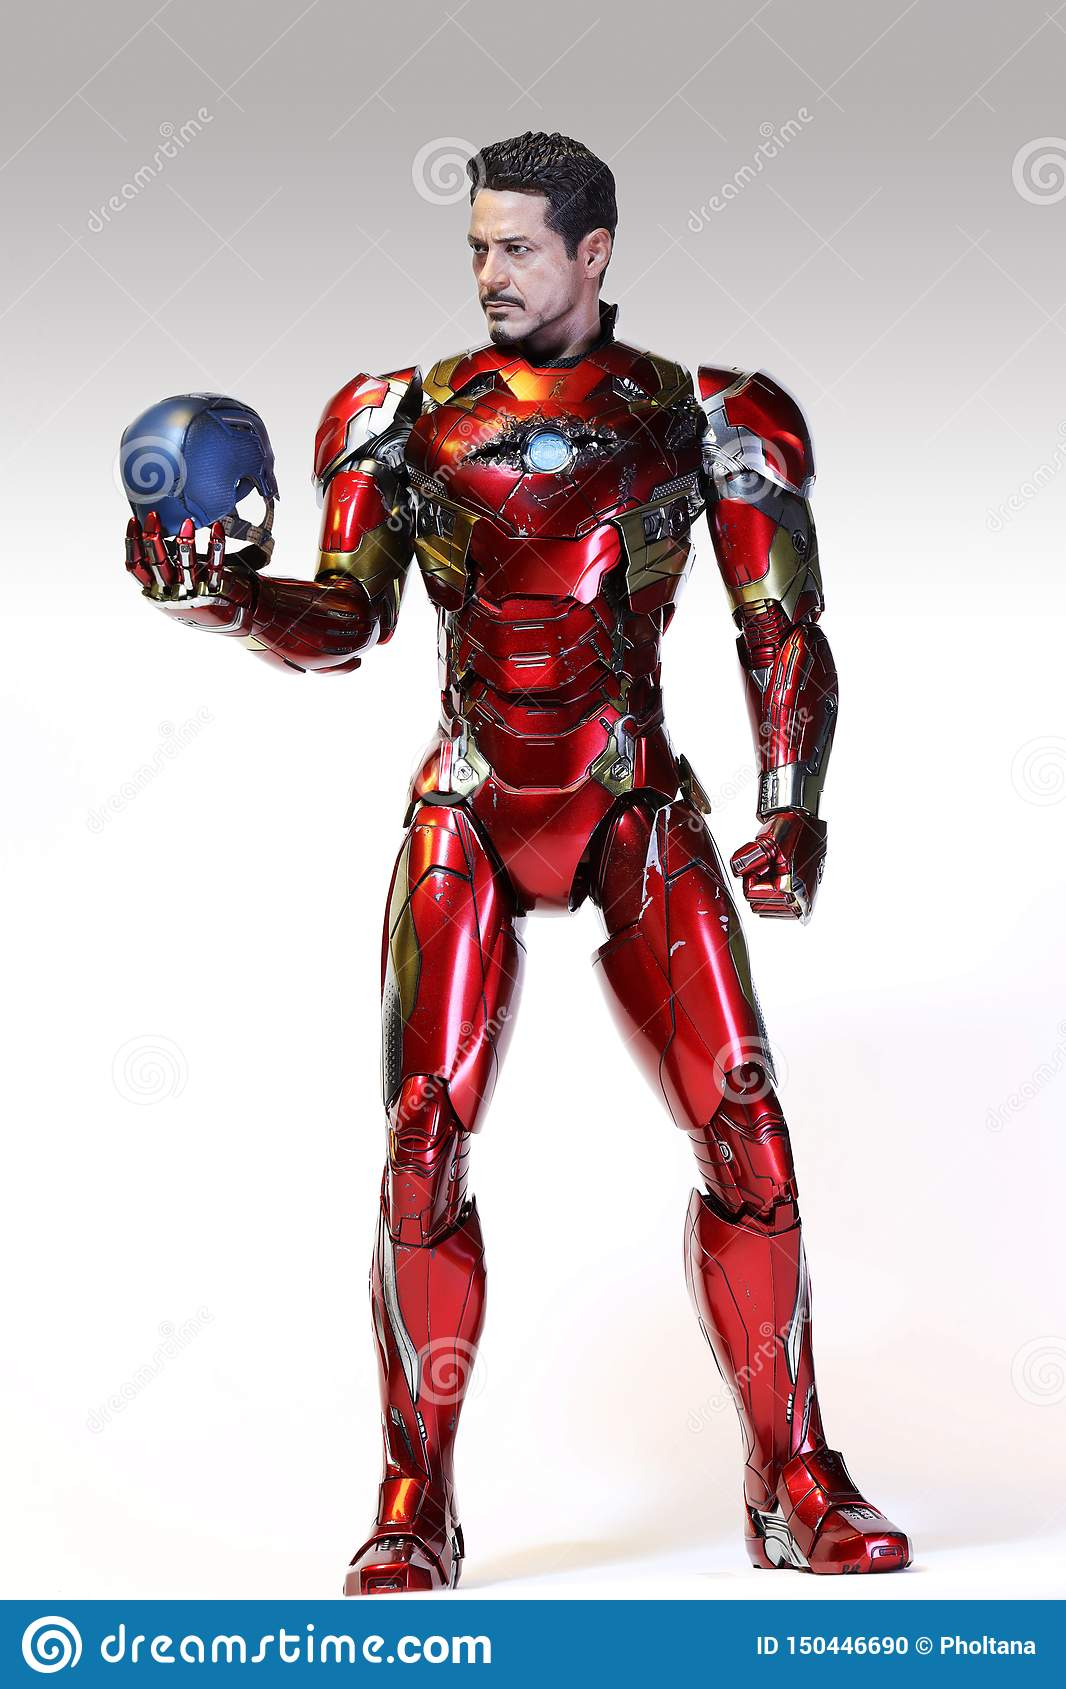 Closeup IRONMAN Statue Figure Model on White Background